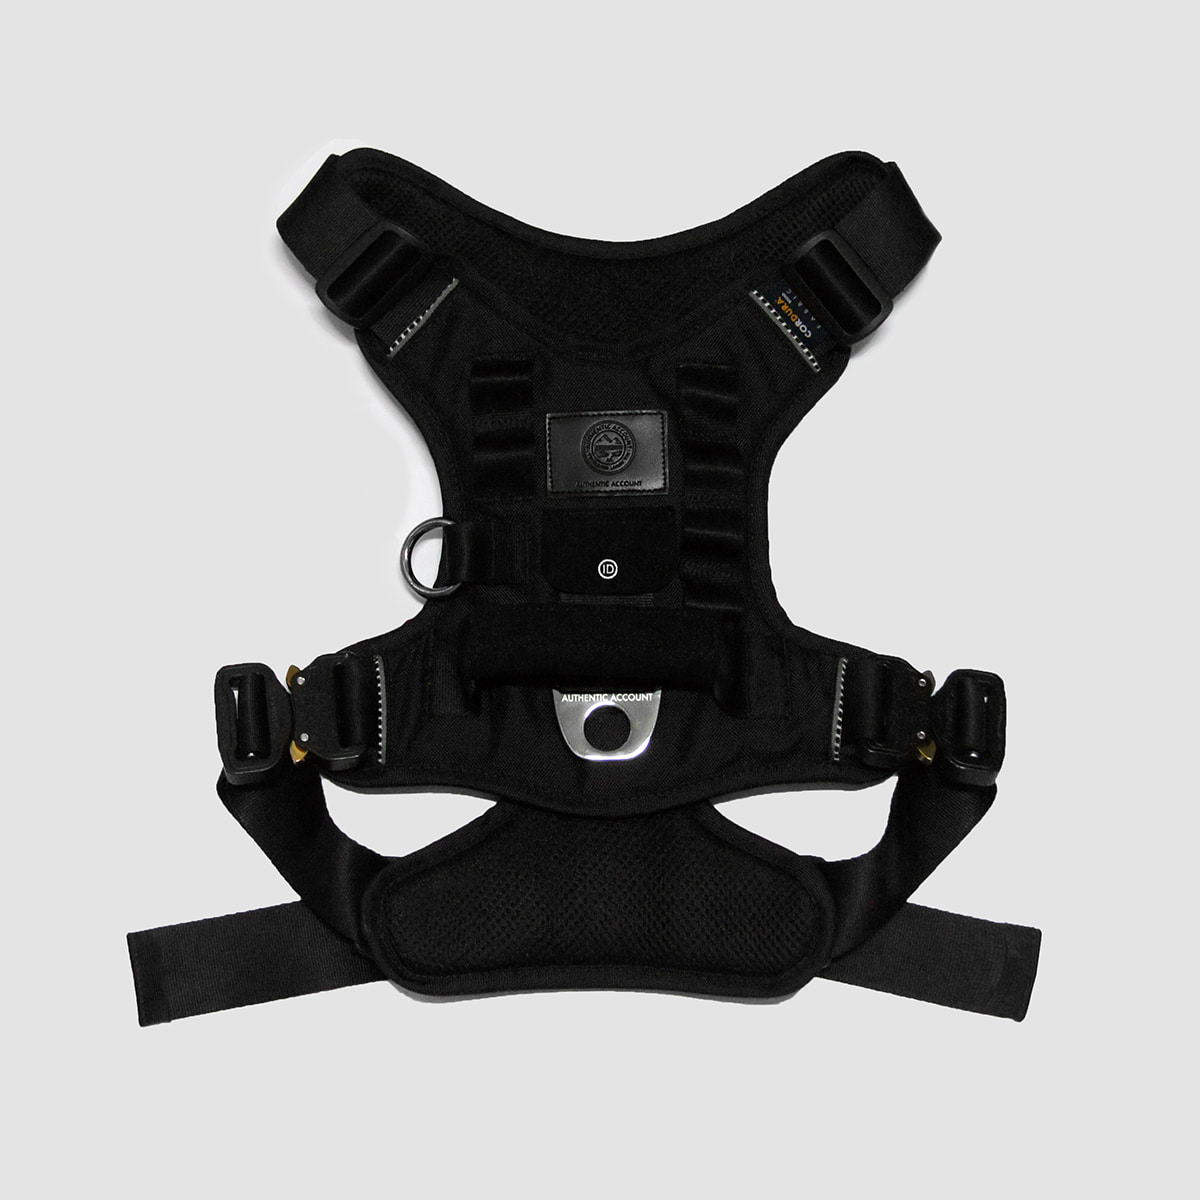 AA19 S/S HI-TECH HARNESS (BLACK)